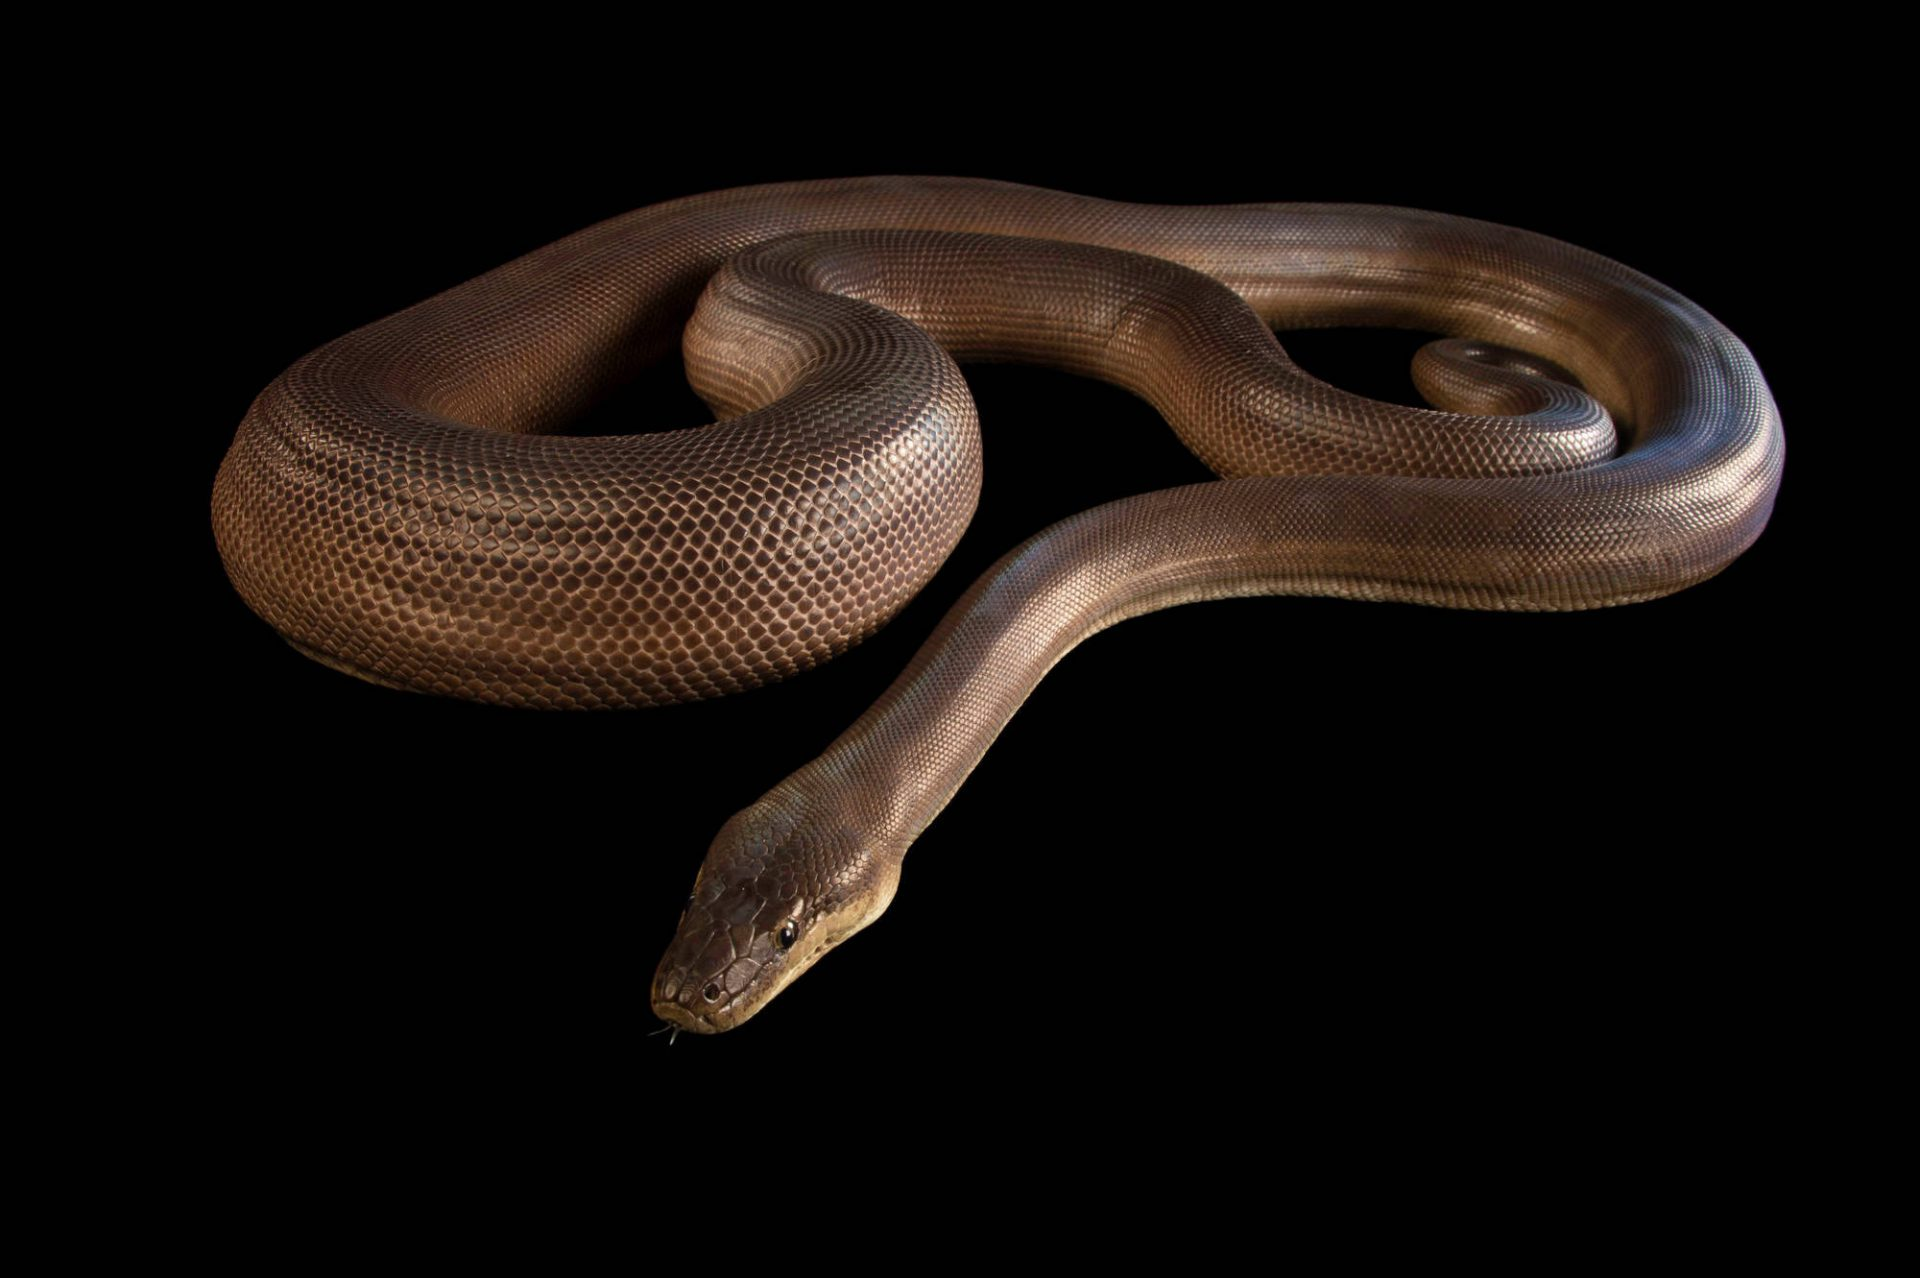 An olive python (Liasis olivaceus olivaceus) at the Wild Life Sydney Zoo.